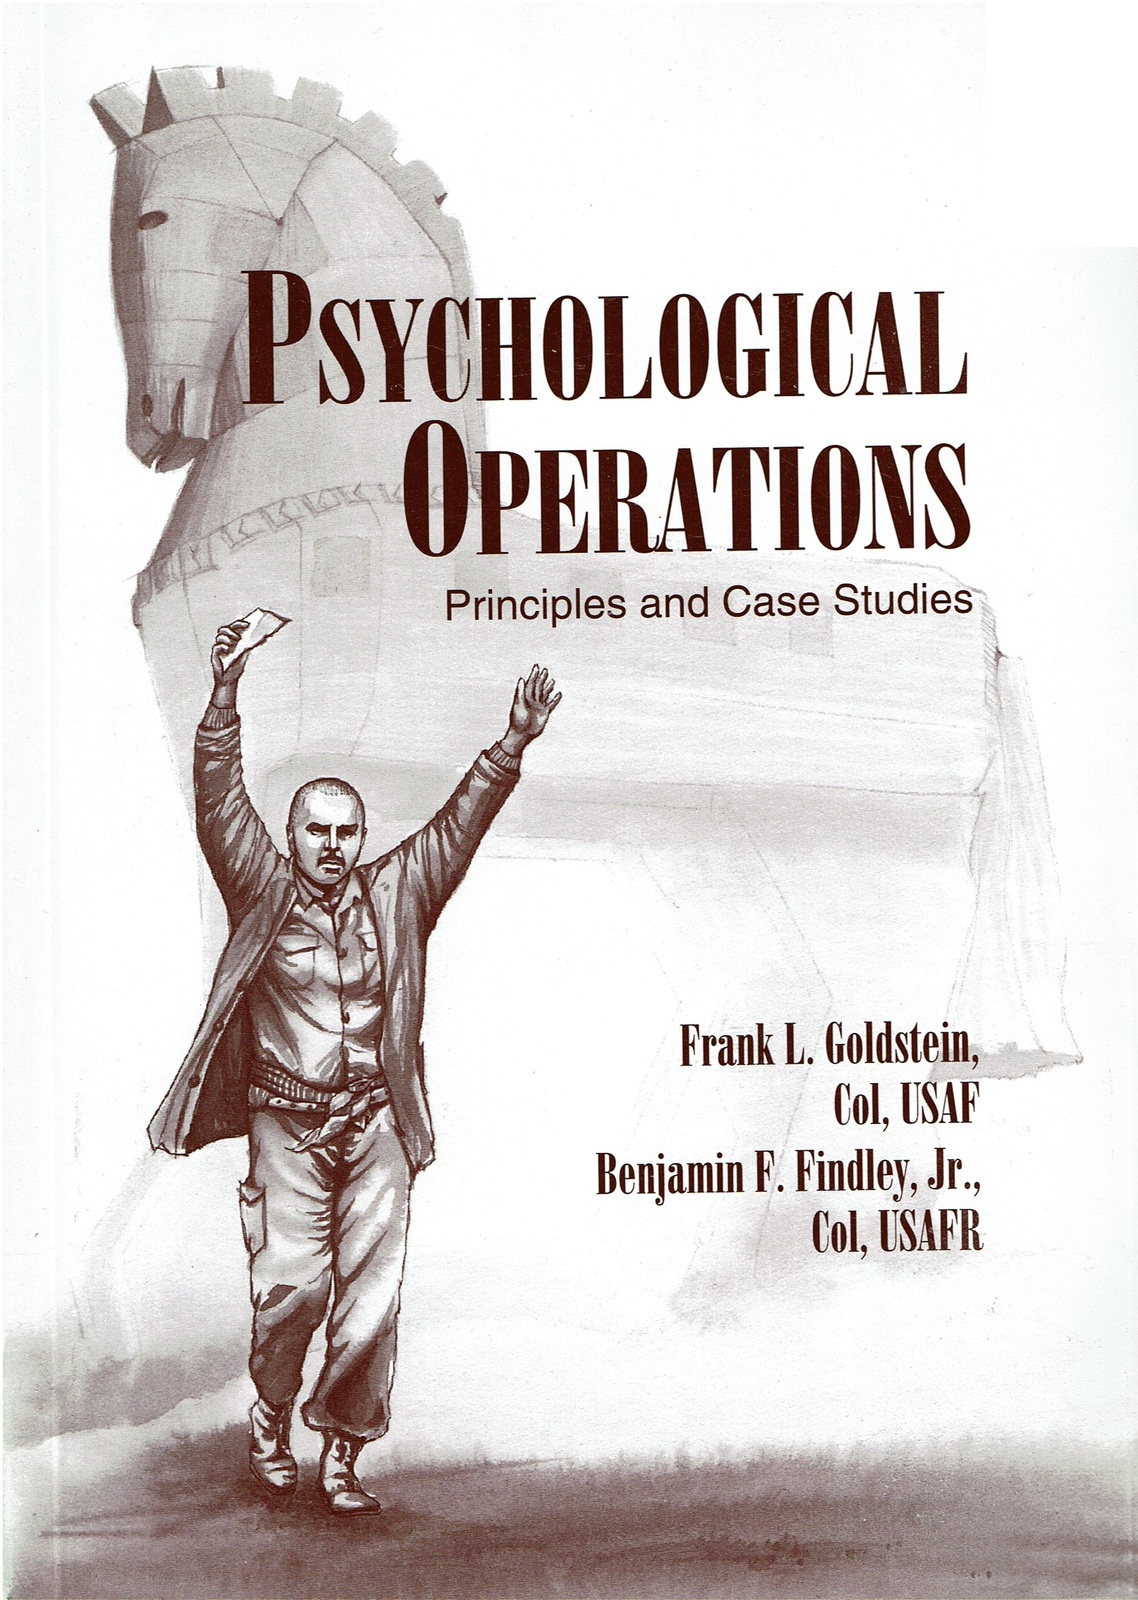 Psychological Operations, Principles and Case Studies, by Frank L. Goldstein